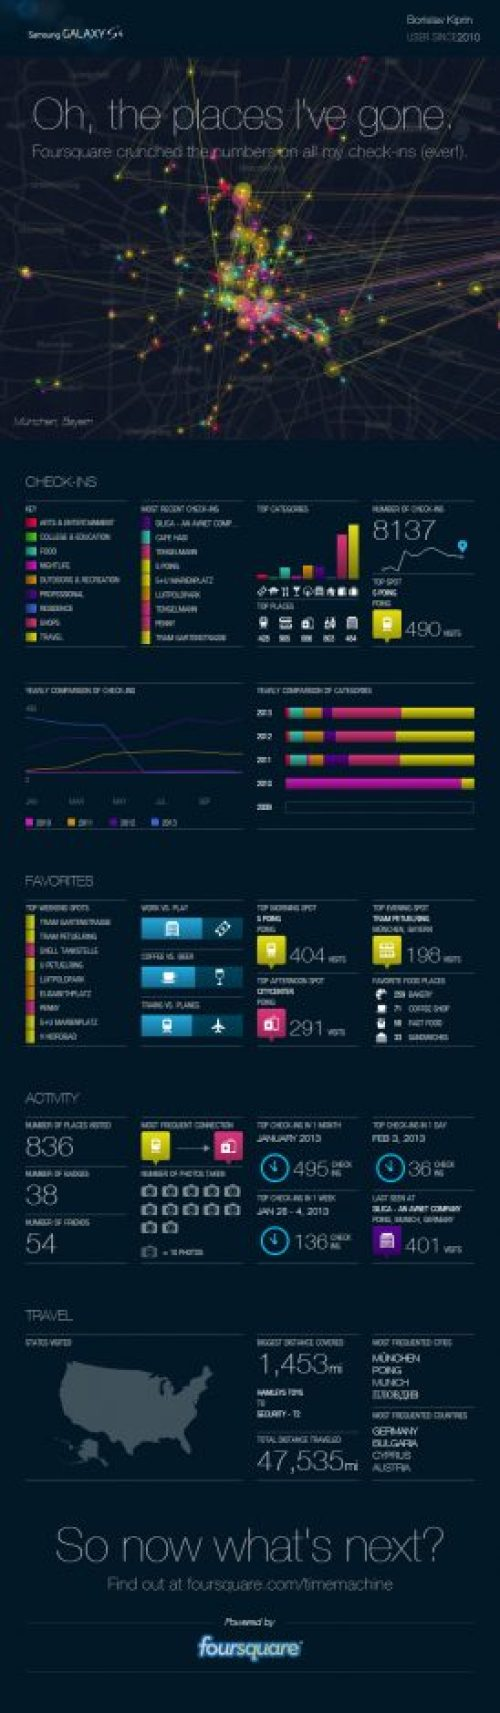 My history on Foursquare visualized